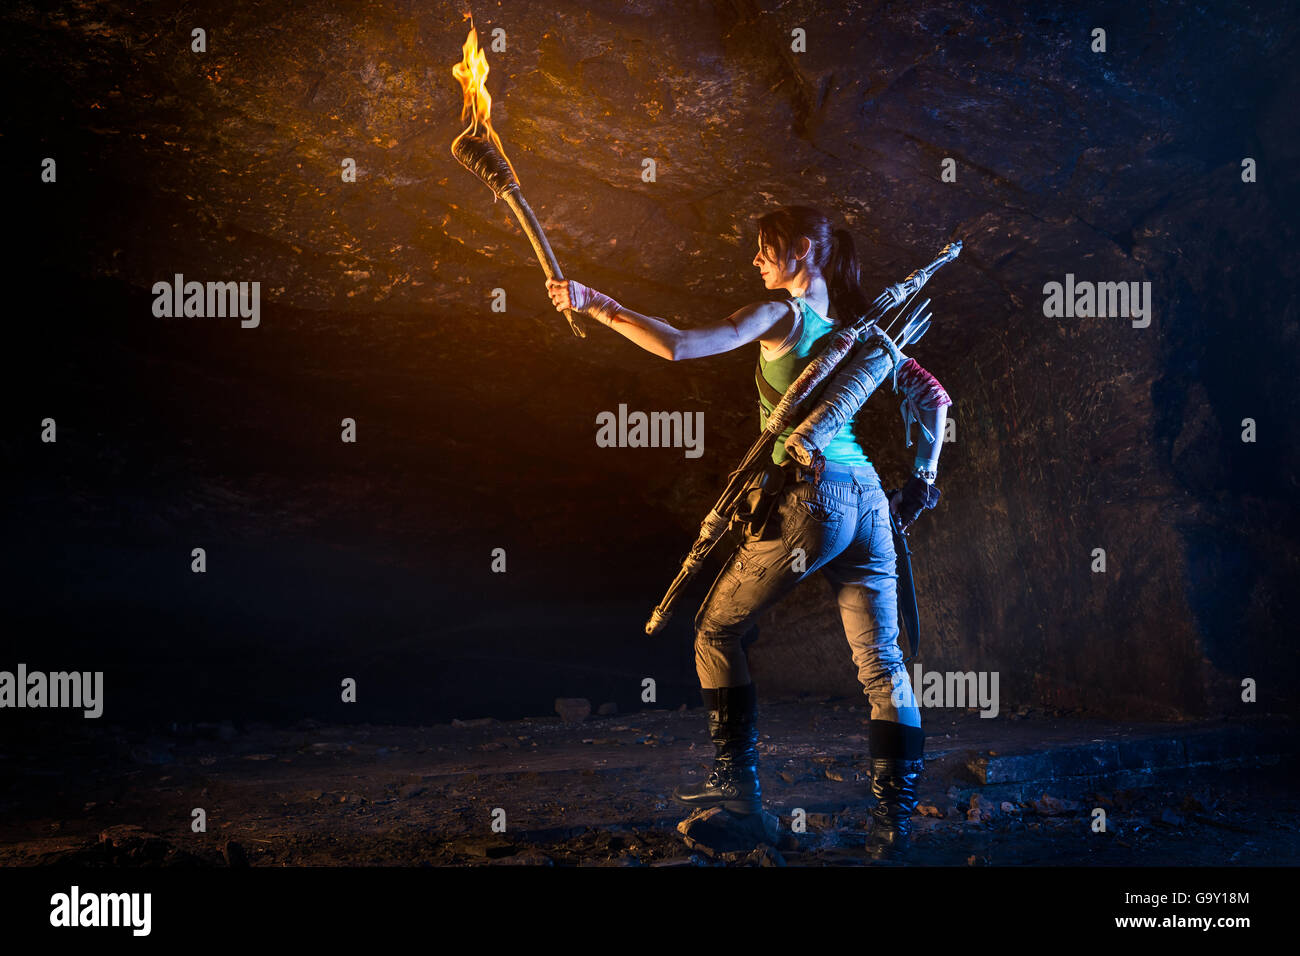 Tomb Raider. Lara Croft-like character exploring caves holding torch in one hand, knife in the other. Wears bow - Stock Image